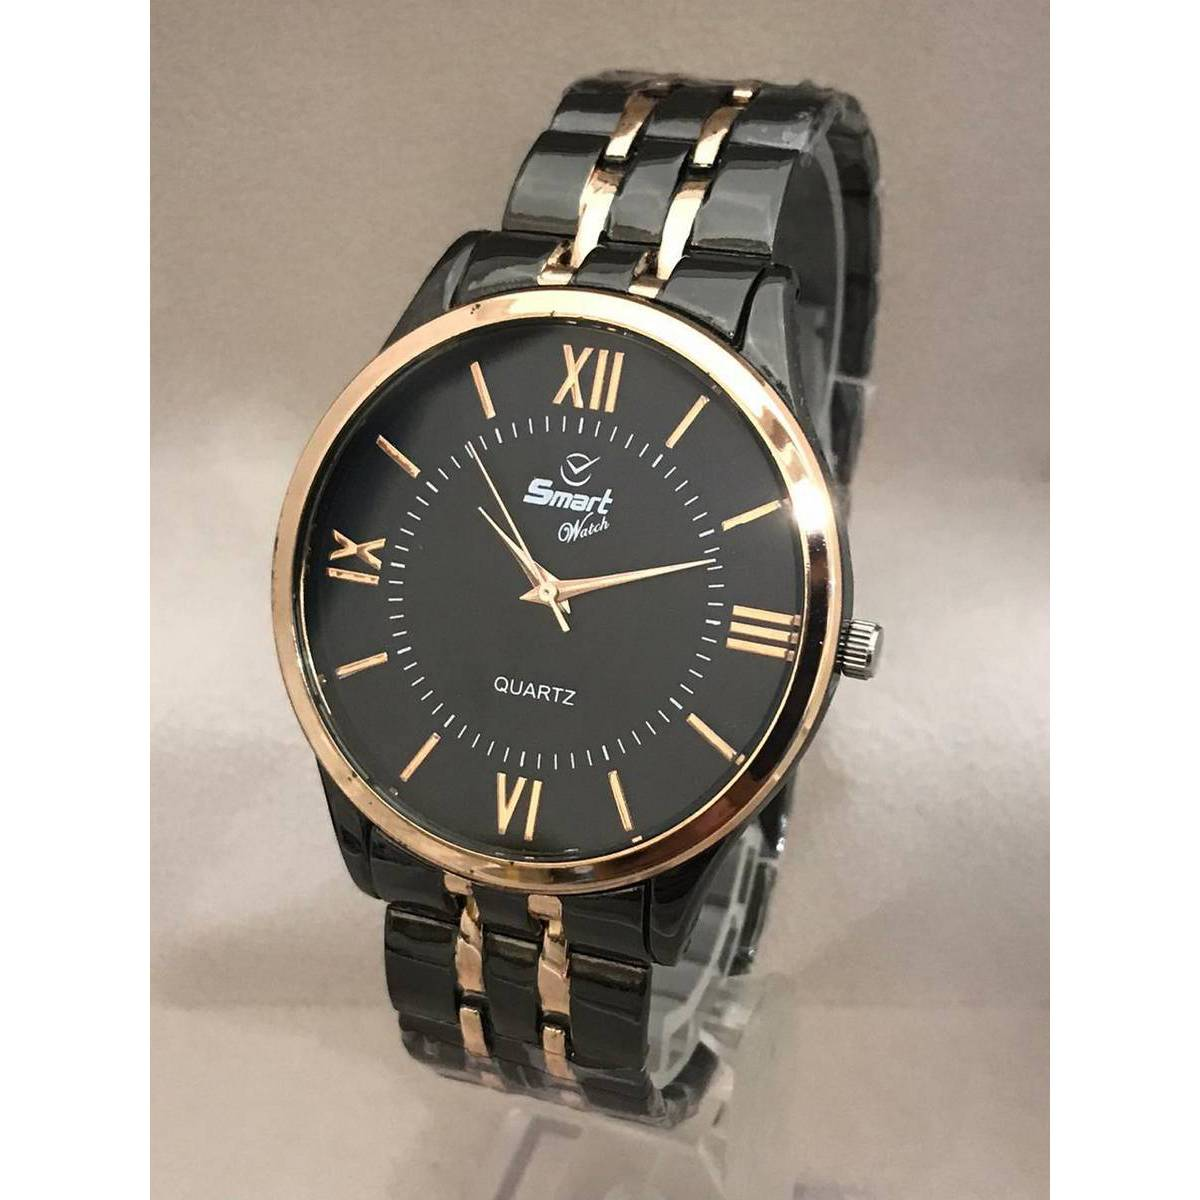 New Stainless Steel Metal Strap Analog Watch For Men